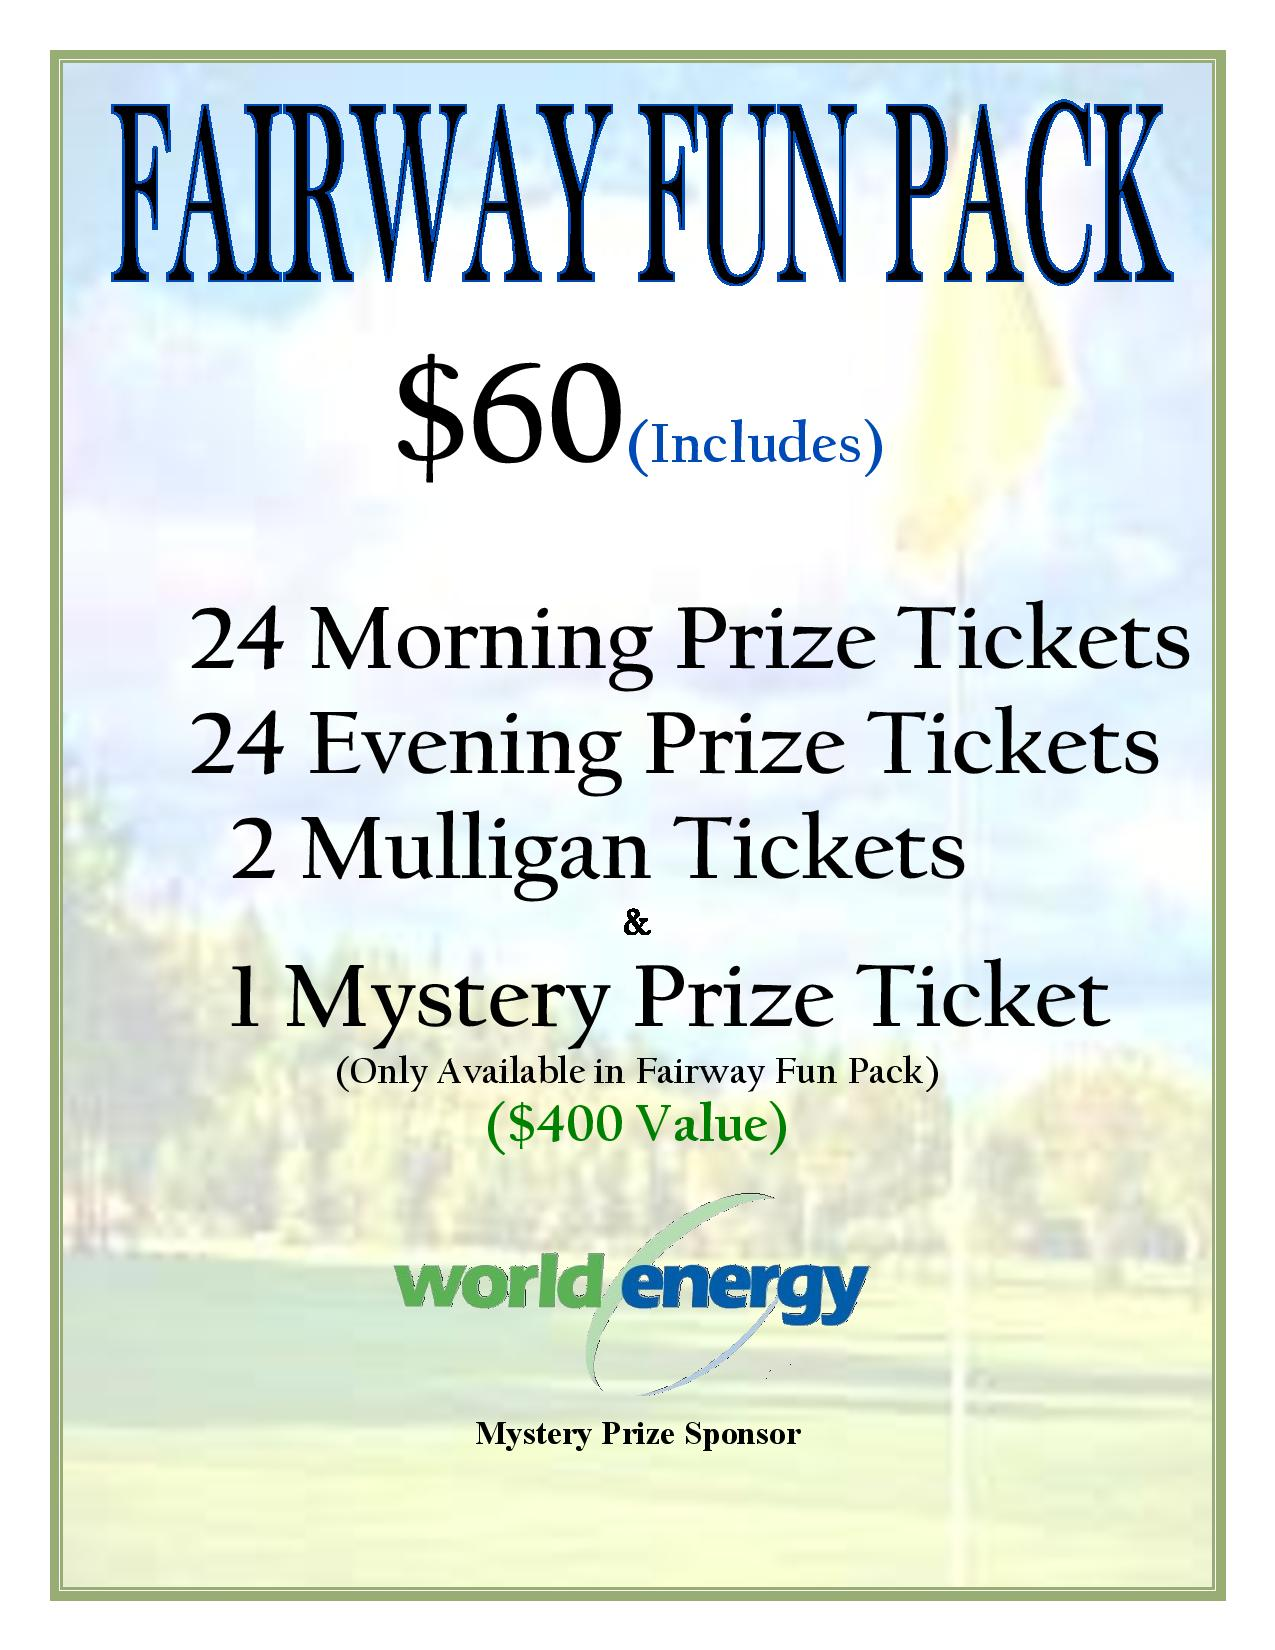 Fairway Fun Pack Sign 2021-page-001